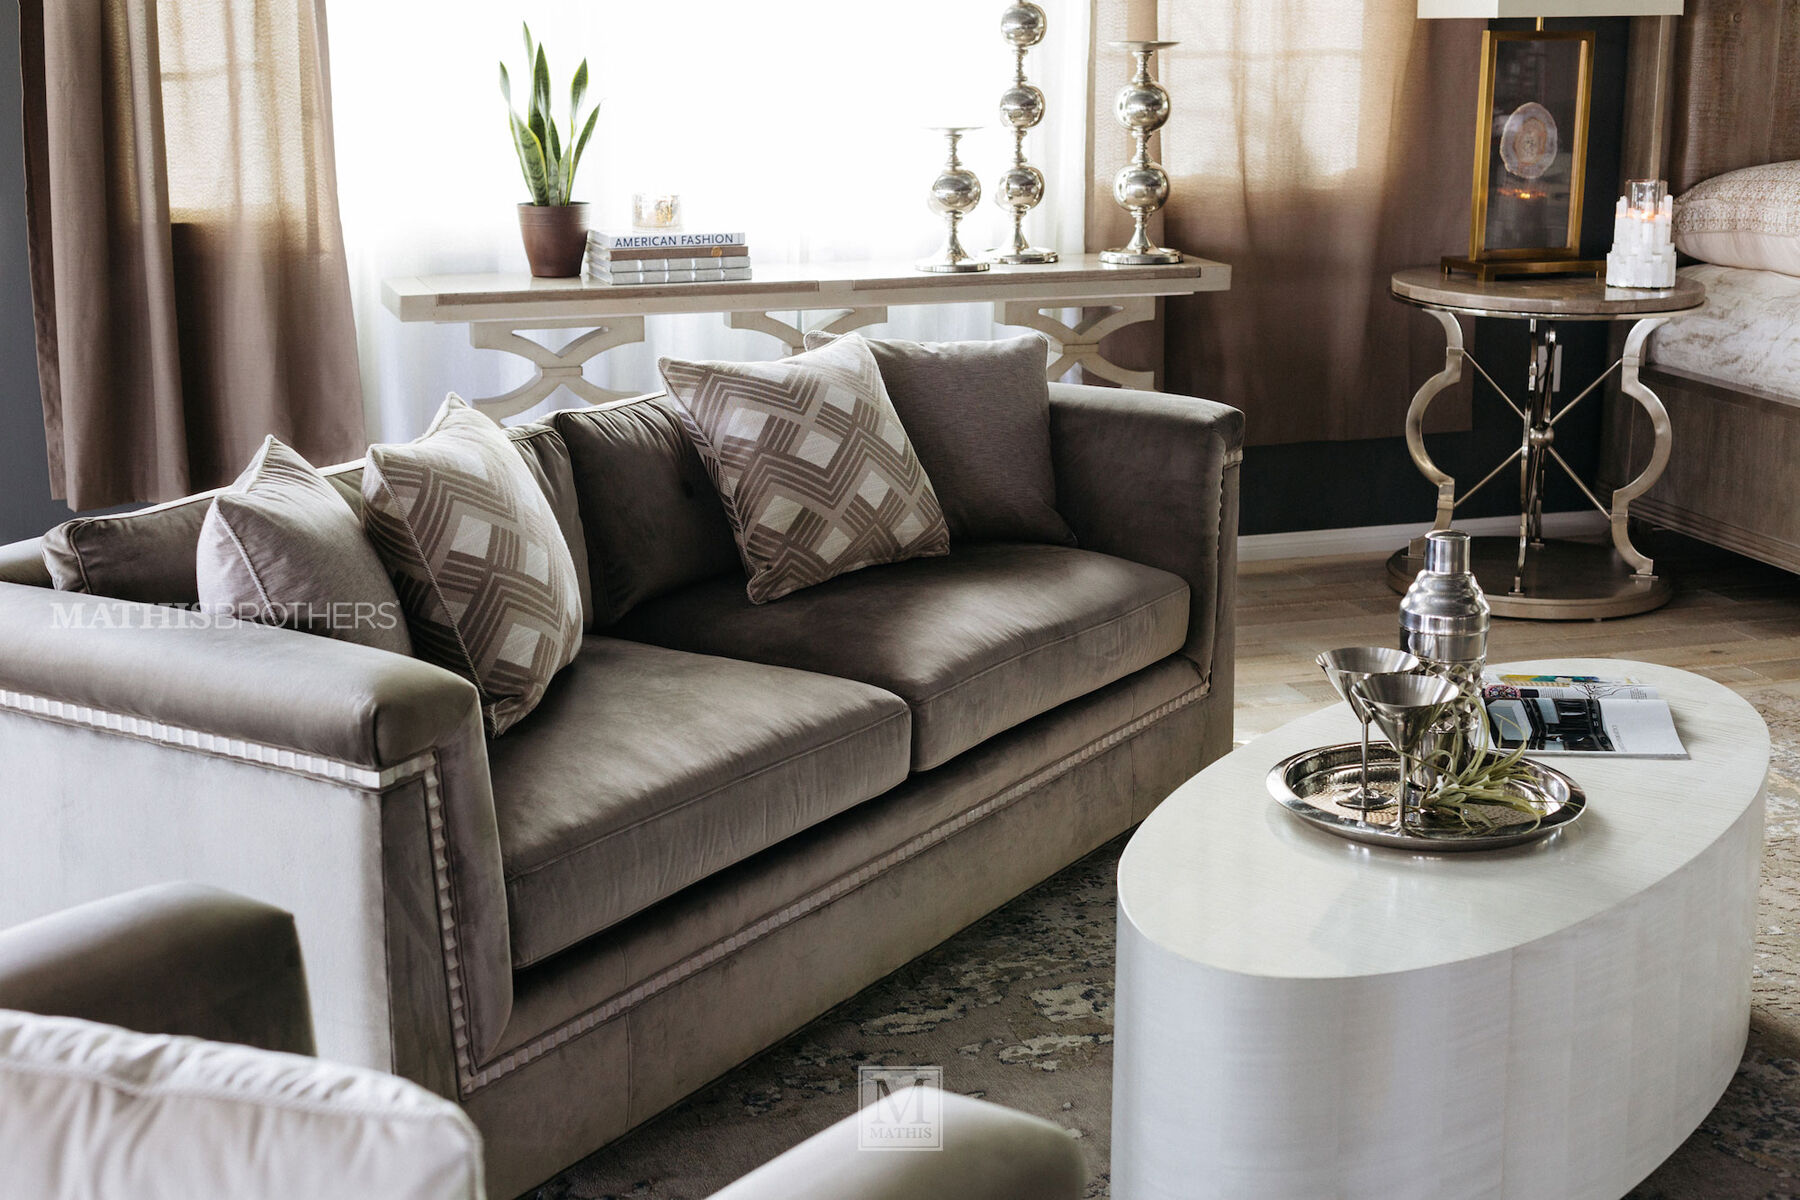 glam sofa set hamiltons gallery sofas couches mathis brothers furniture stores glamorous velvet 88 5 quot shelter